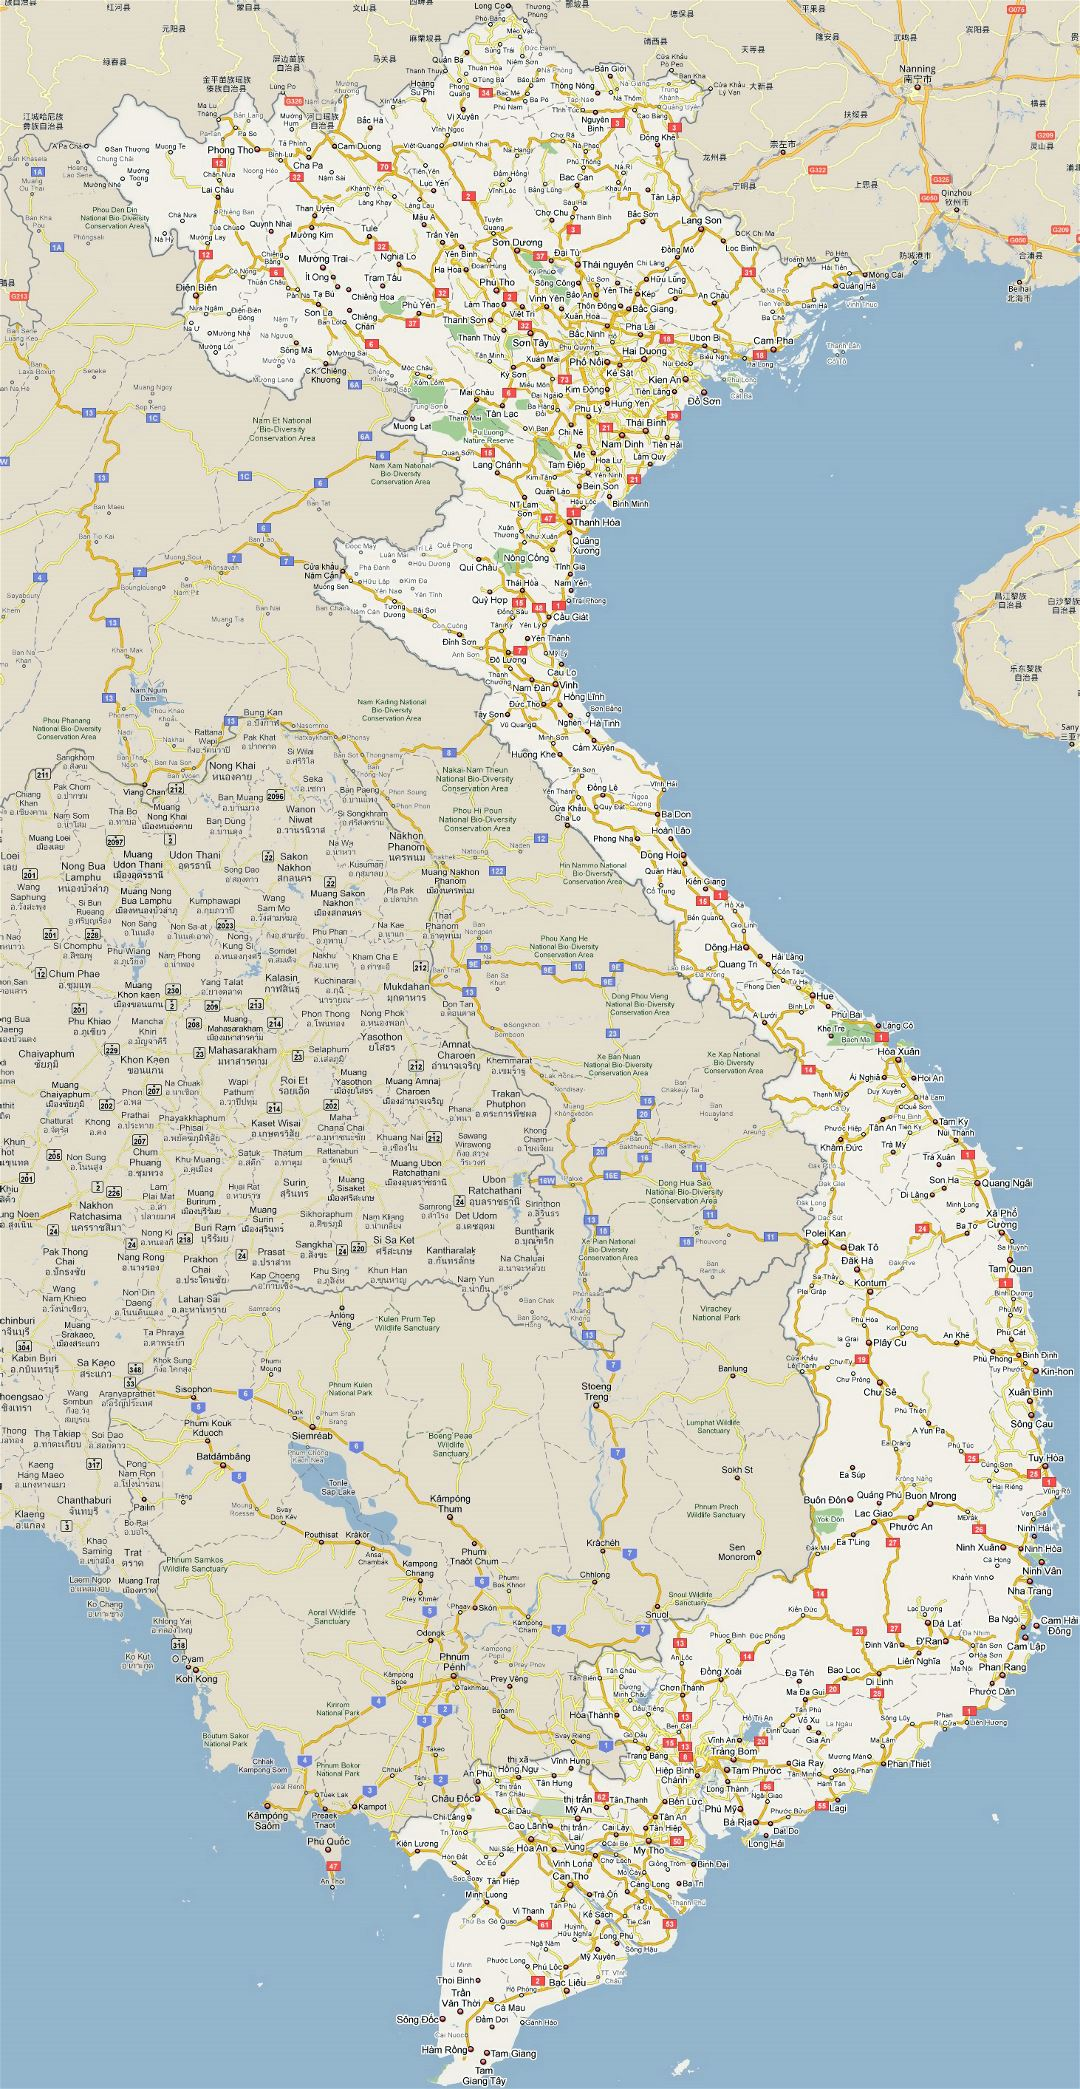 Large road map of Vietnam with all cities